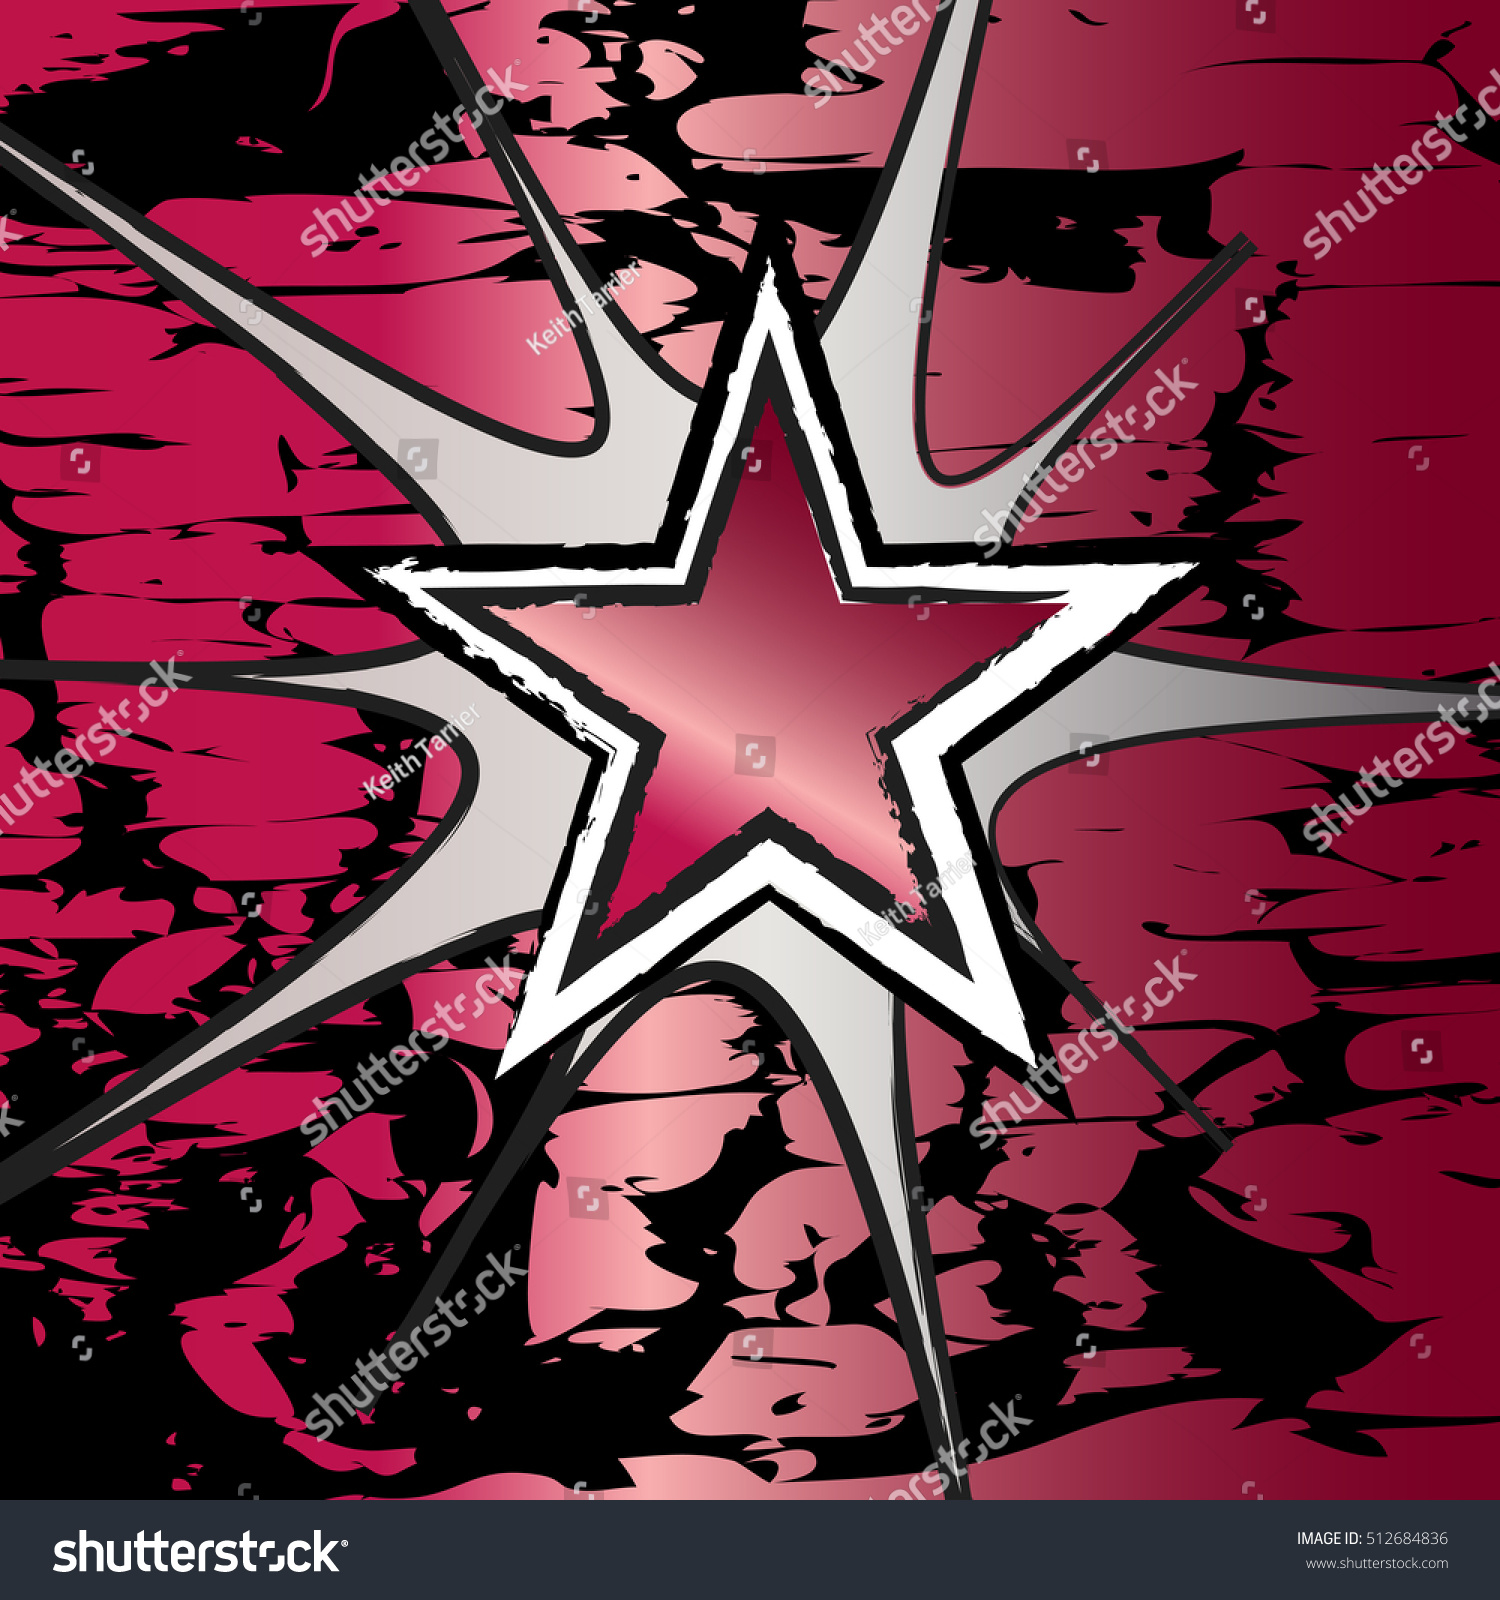 Rock n roll background images - Ruby Colored Rock N Roll Grunge Star Vector Background